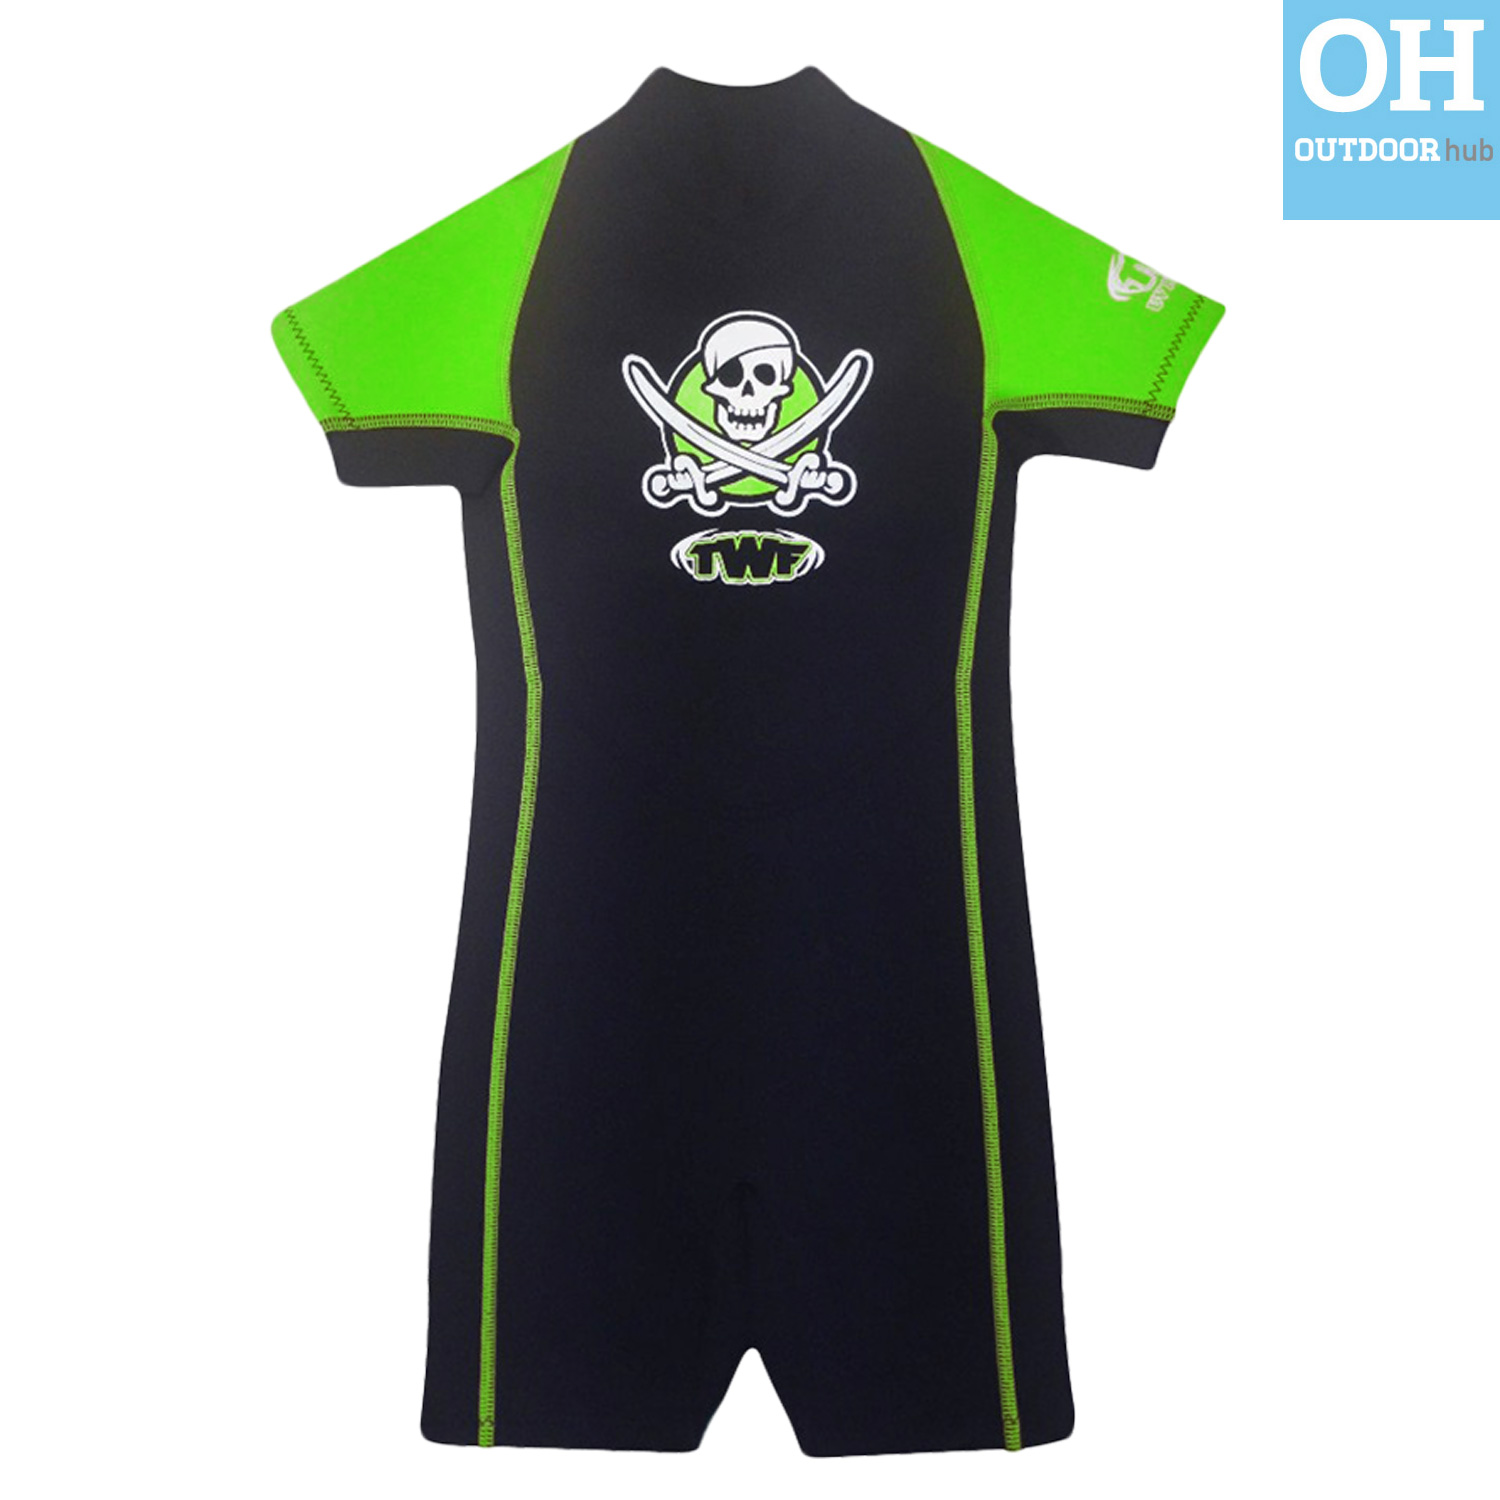 TWF-2mm-Kids-Shortie-Wetsuit-Childs-Shorty-Boys-Girls-Beach-Swim-Baby-Toddler thumbnail 15